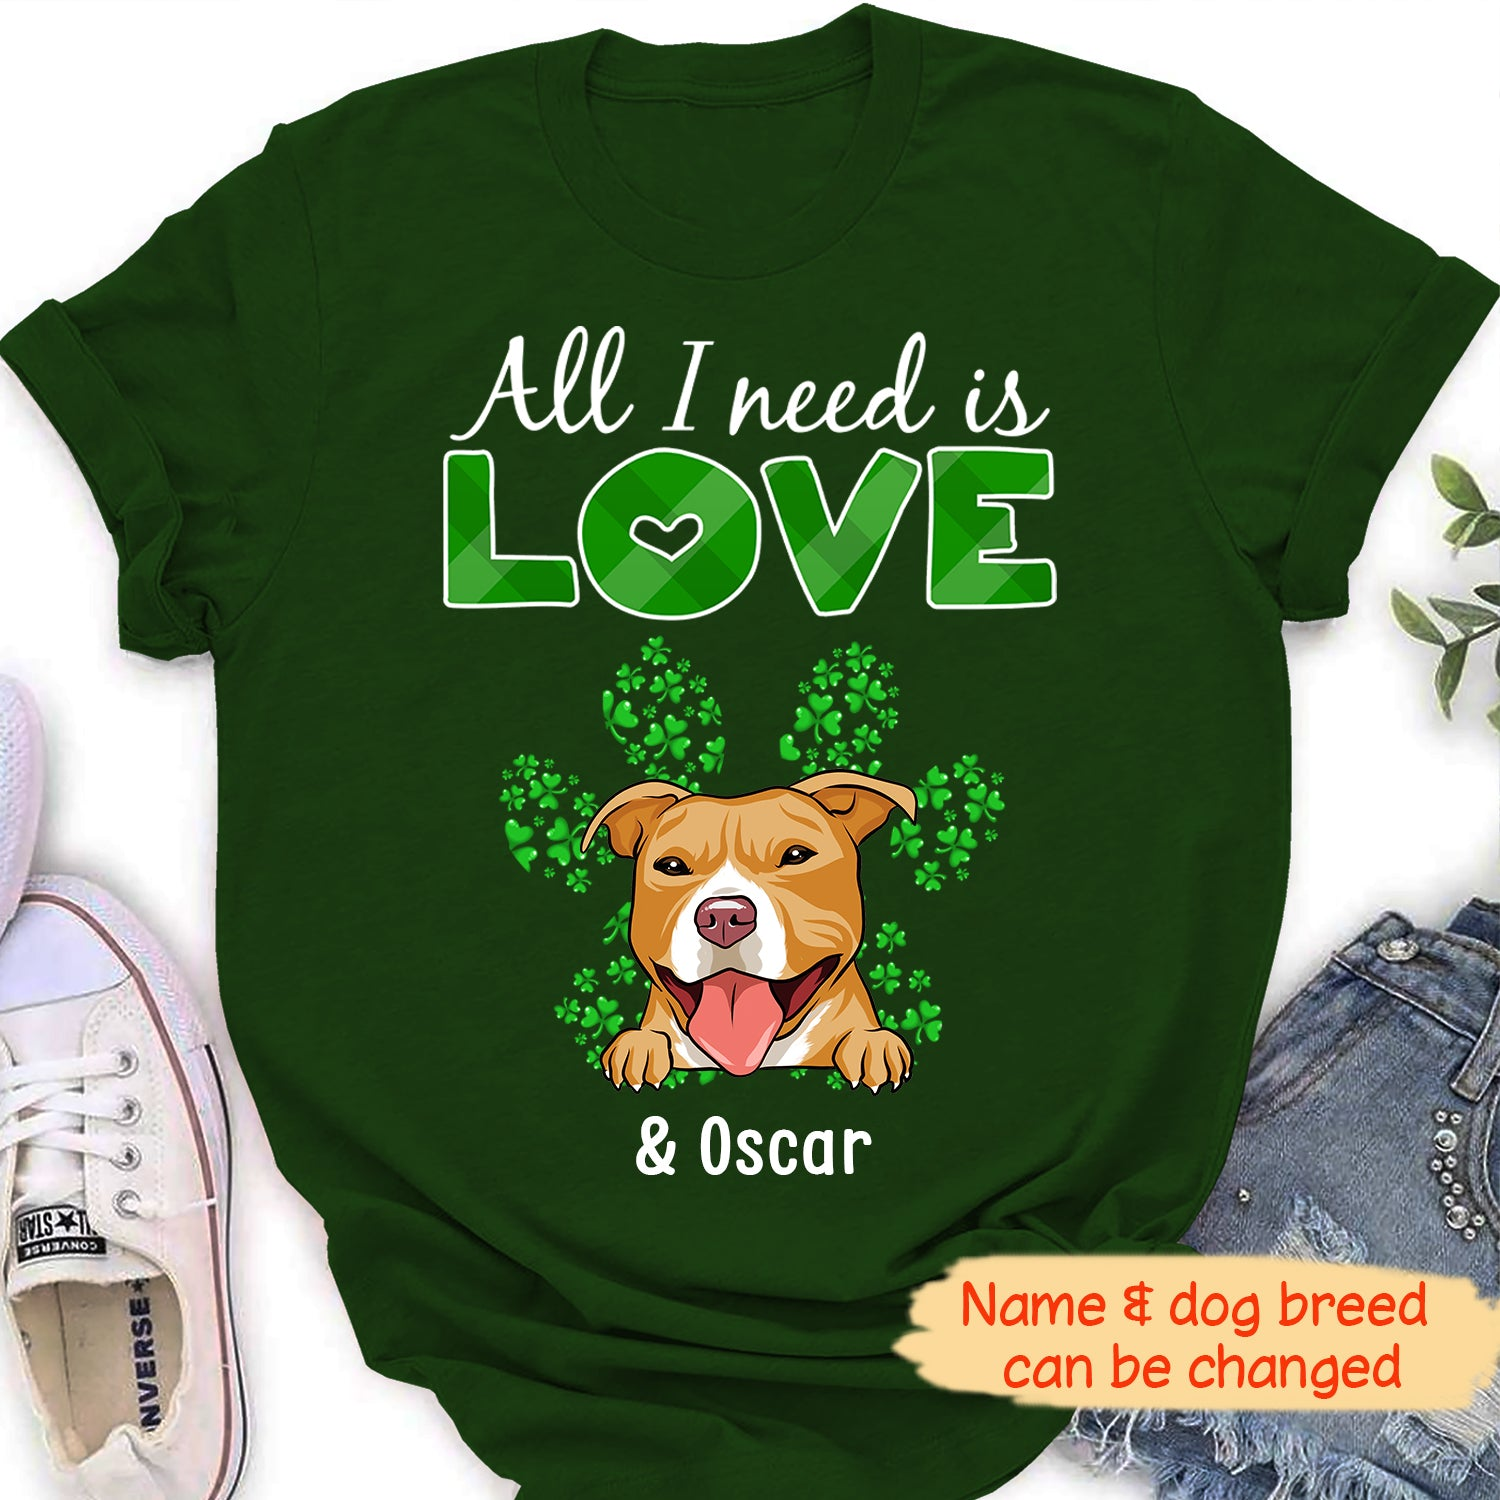 All I need (Saint Patrick) - Personalized custom women t-shirt